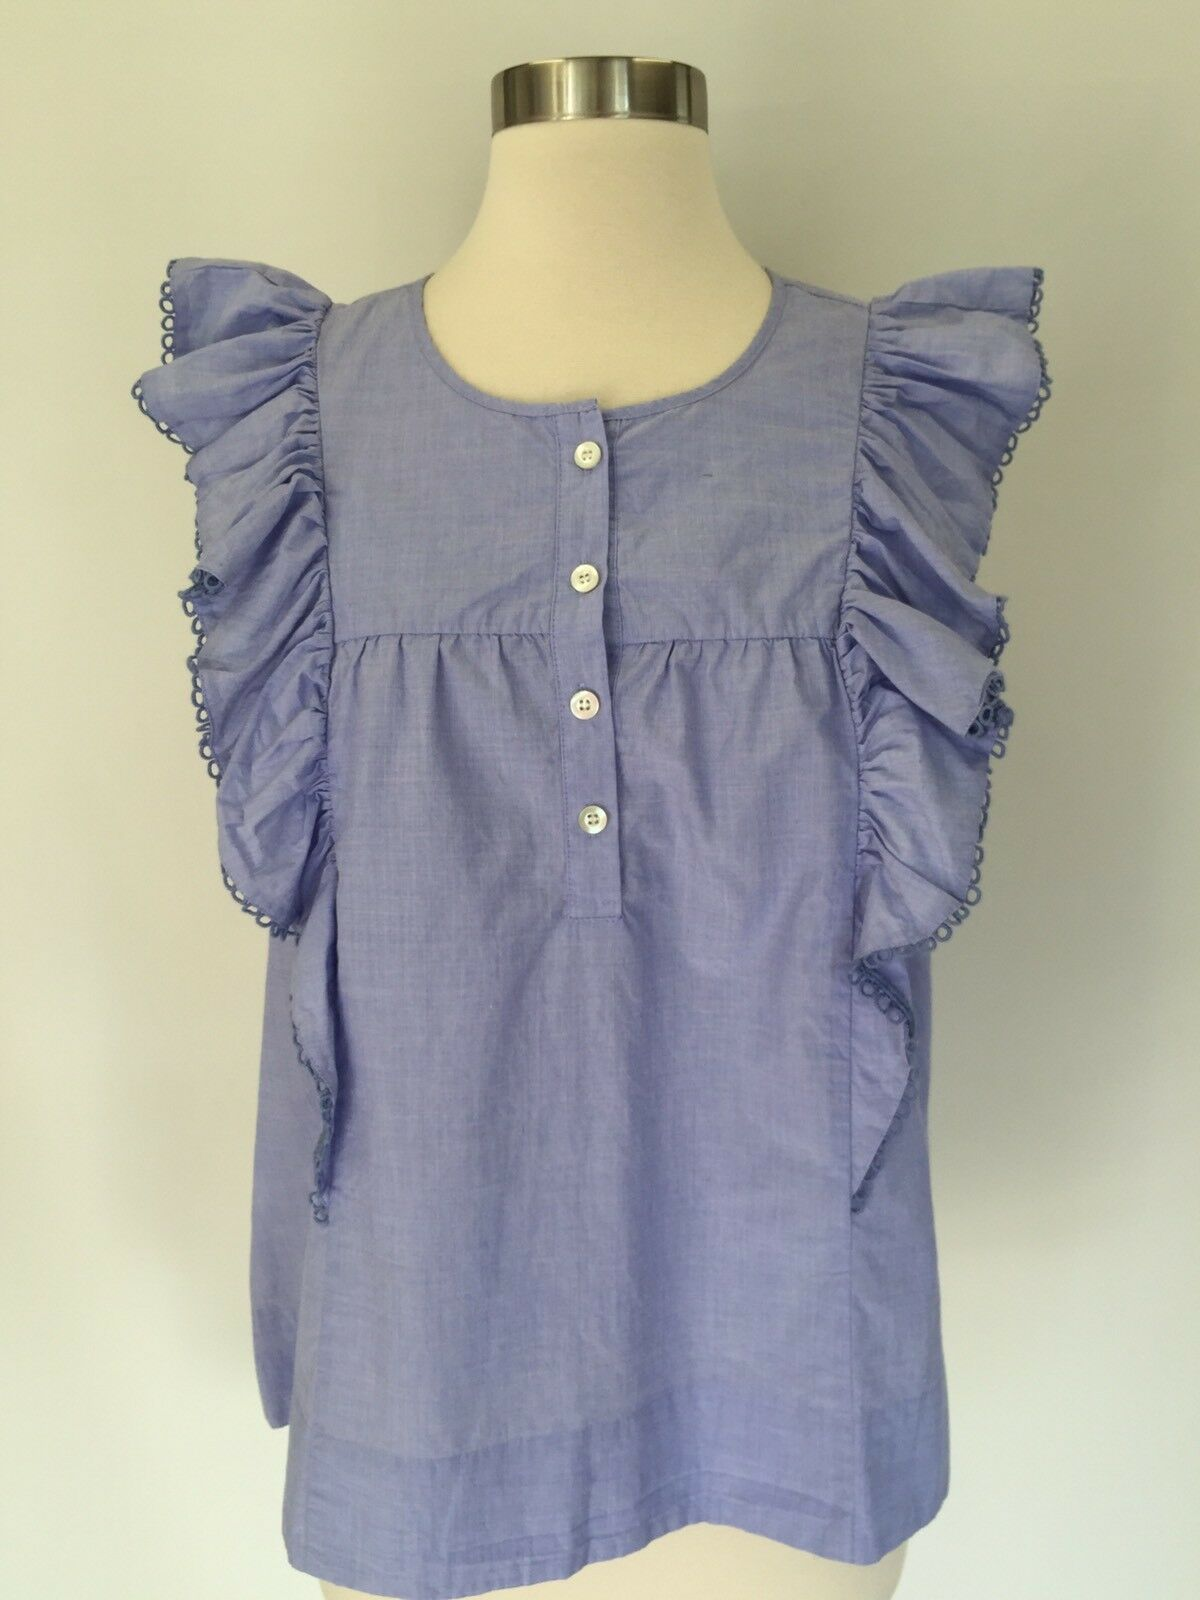 New JCREW Ruffle-front Shirt In End-on-end Cotton Top Blouse 14 Peri Blau G9206